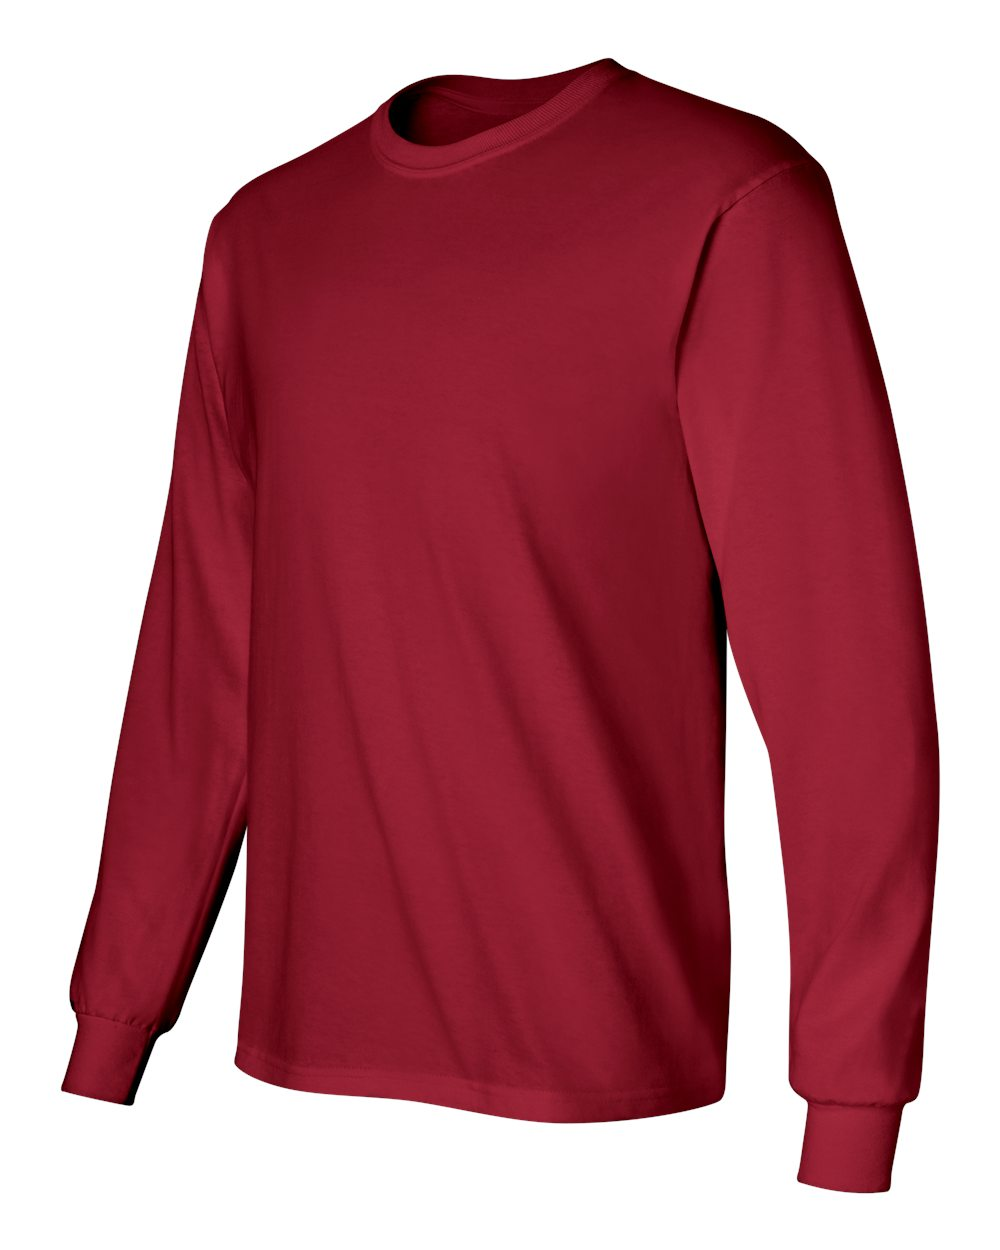 Gildan-Men-039-s-Ultra-Cotton-6-oz-Long-Sleeve-T-Shirt-G240-S-5XL thumbnail 11